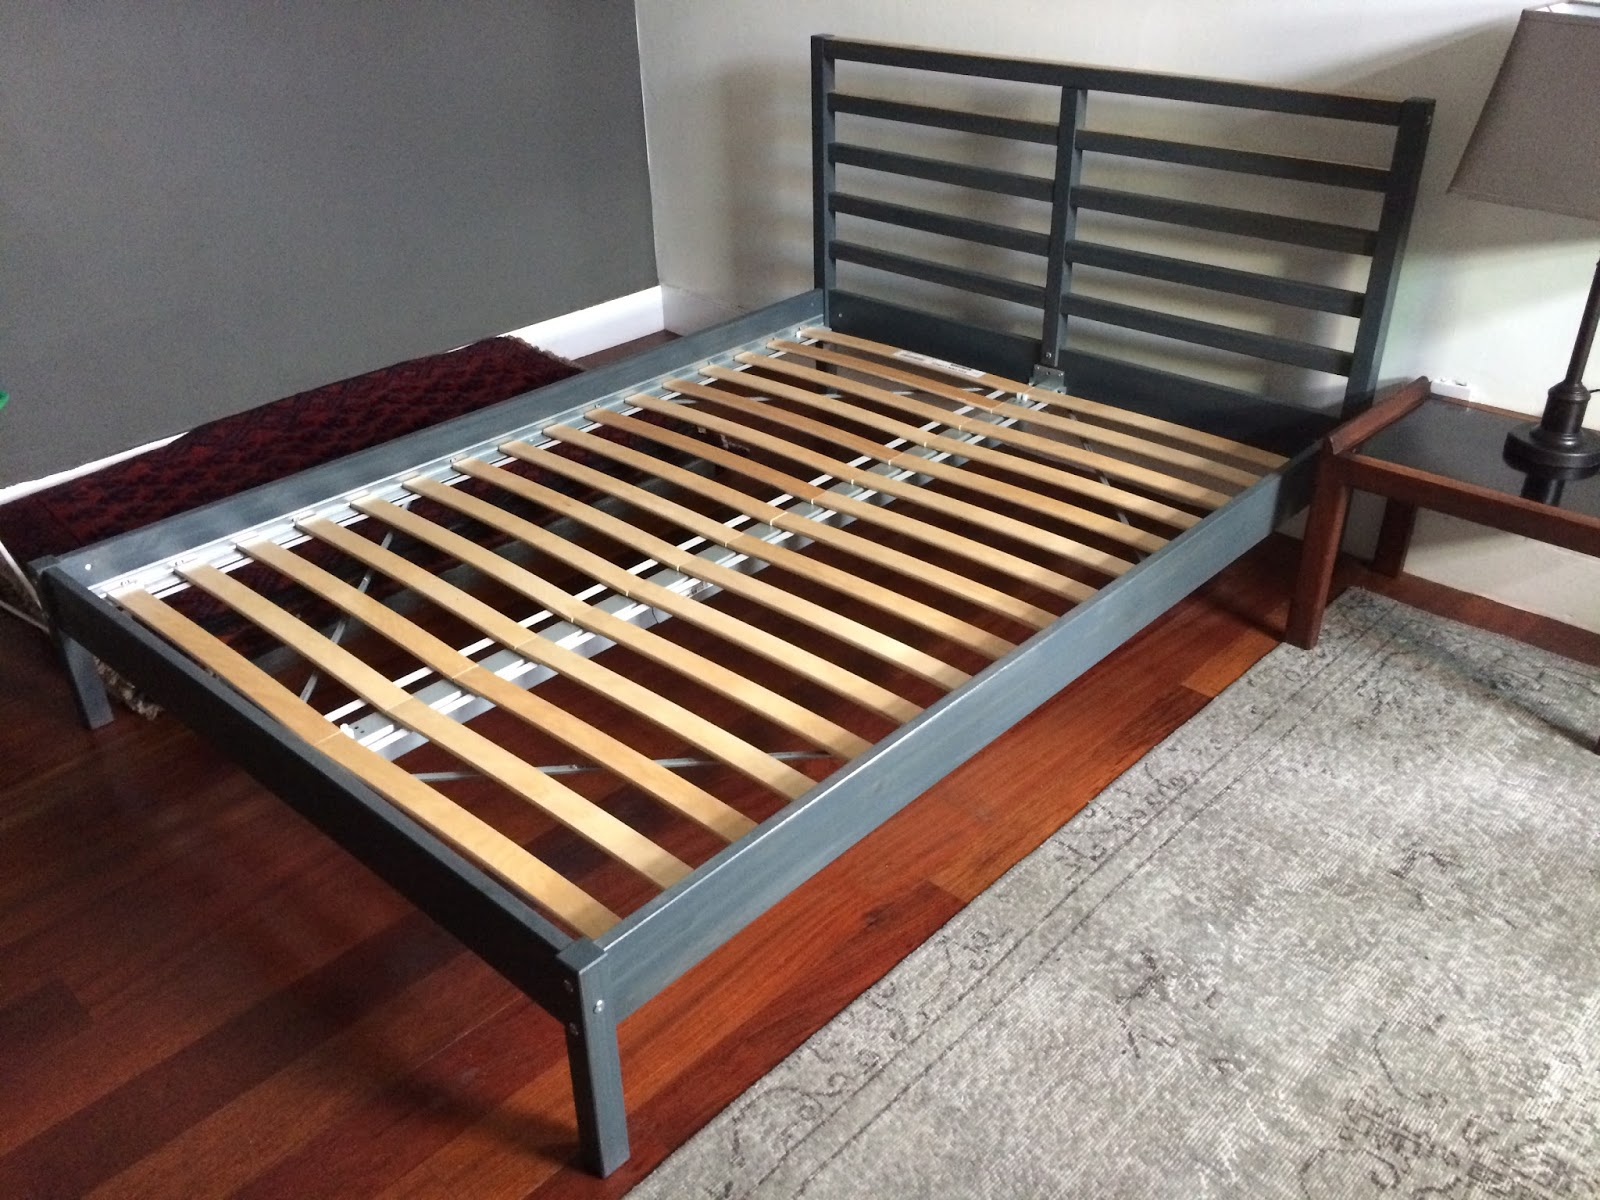 FOR SALE - HOUSING ITEMS: Ikea Tarva pine-wood full-sized bed - gray ...